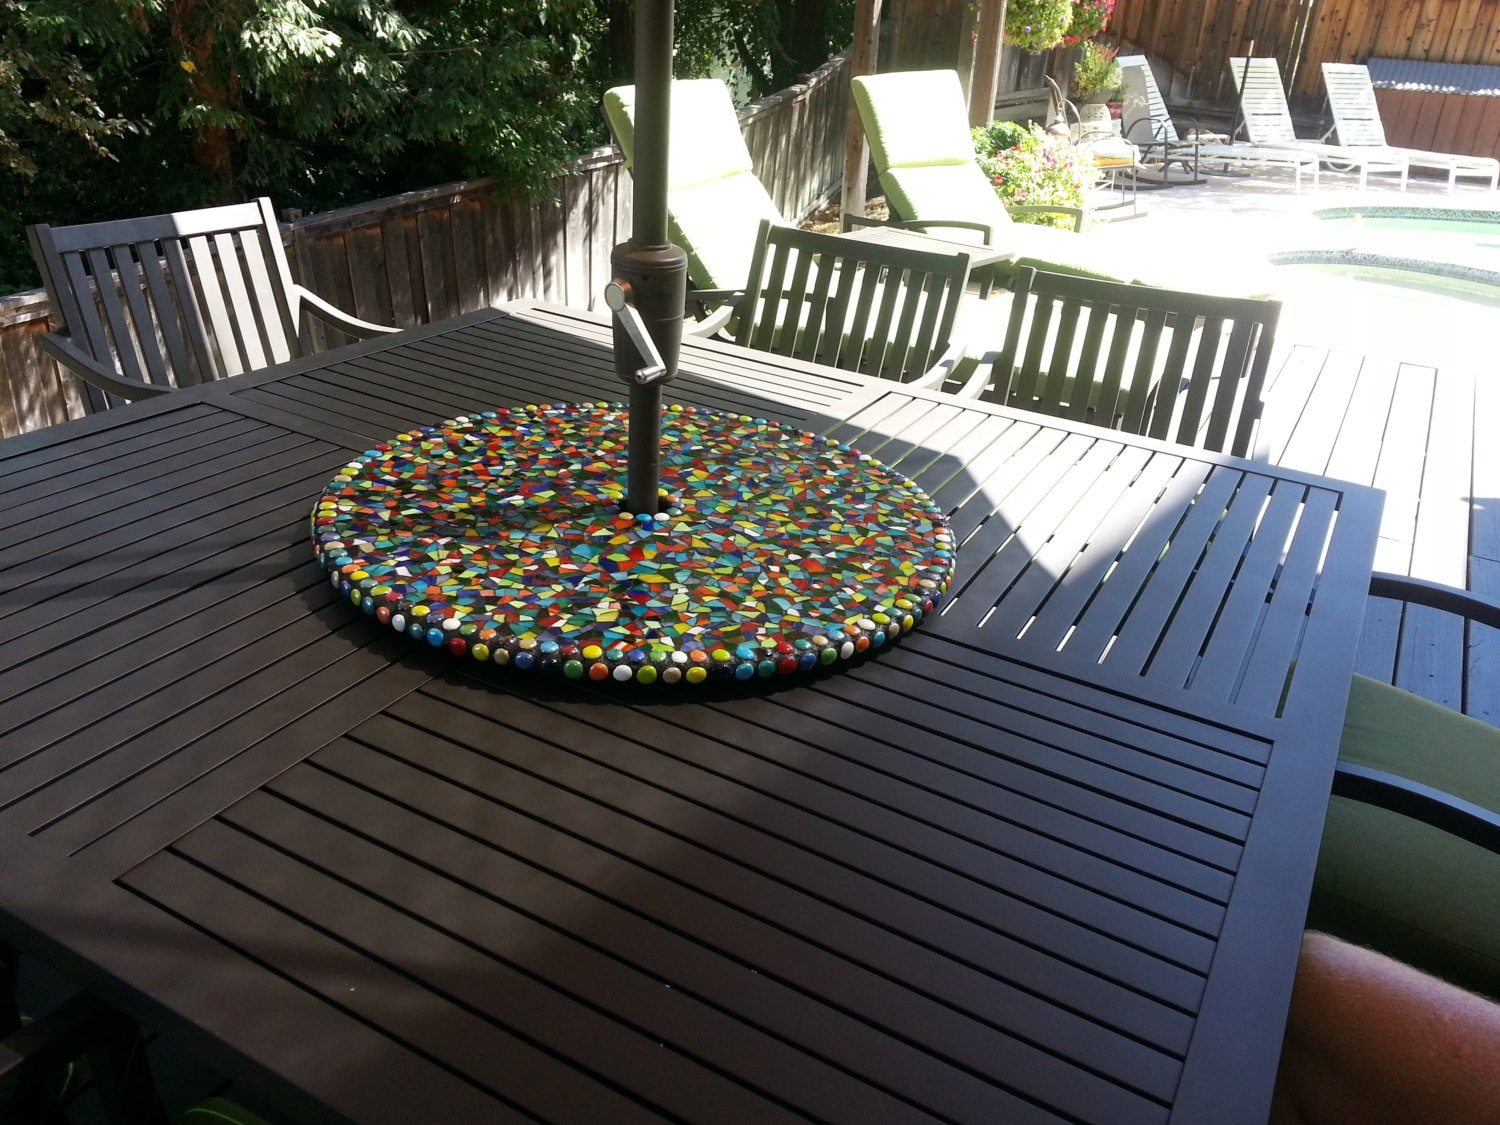 Large Mosaic Stained Glass Outdoor Patio Table Lazy Susan